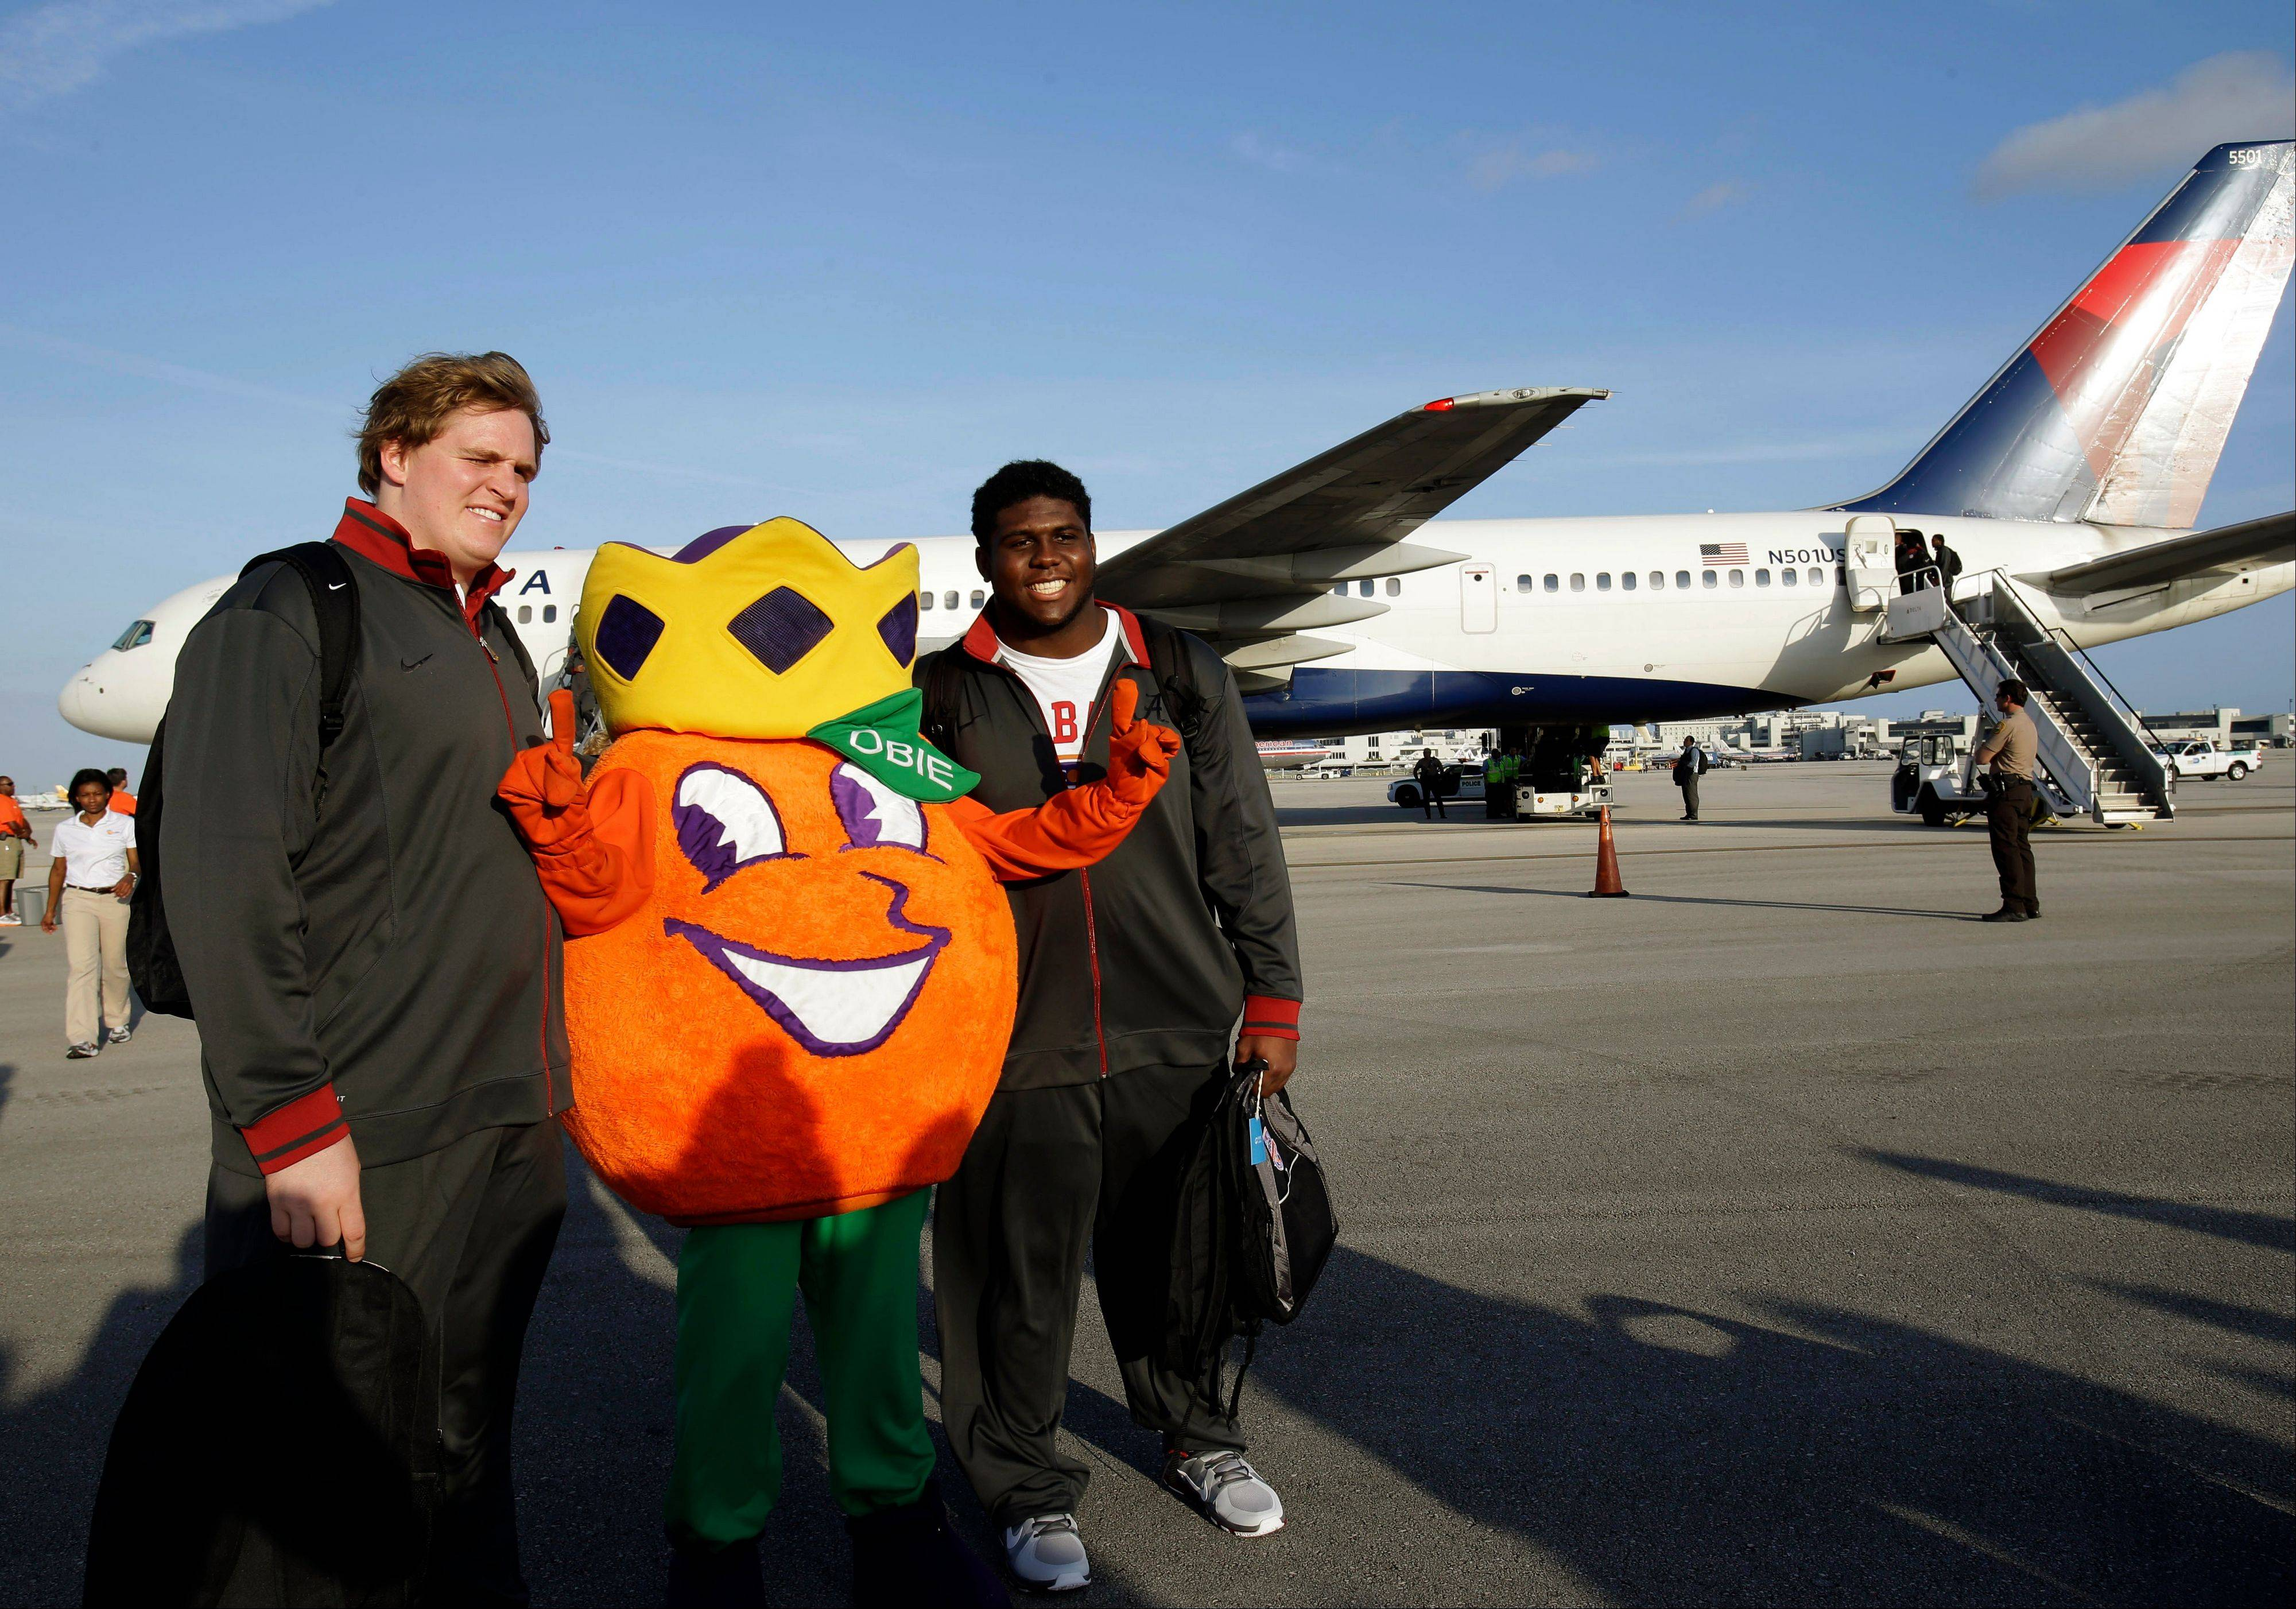 Alabama's Barrett Jones, left, and Chance Warmack, right, pose with Obie, the Orange Bowl Committee mascot, Wednesday upon arriving at Miami International Airport.